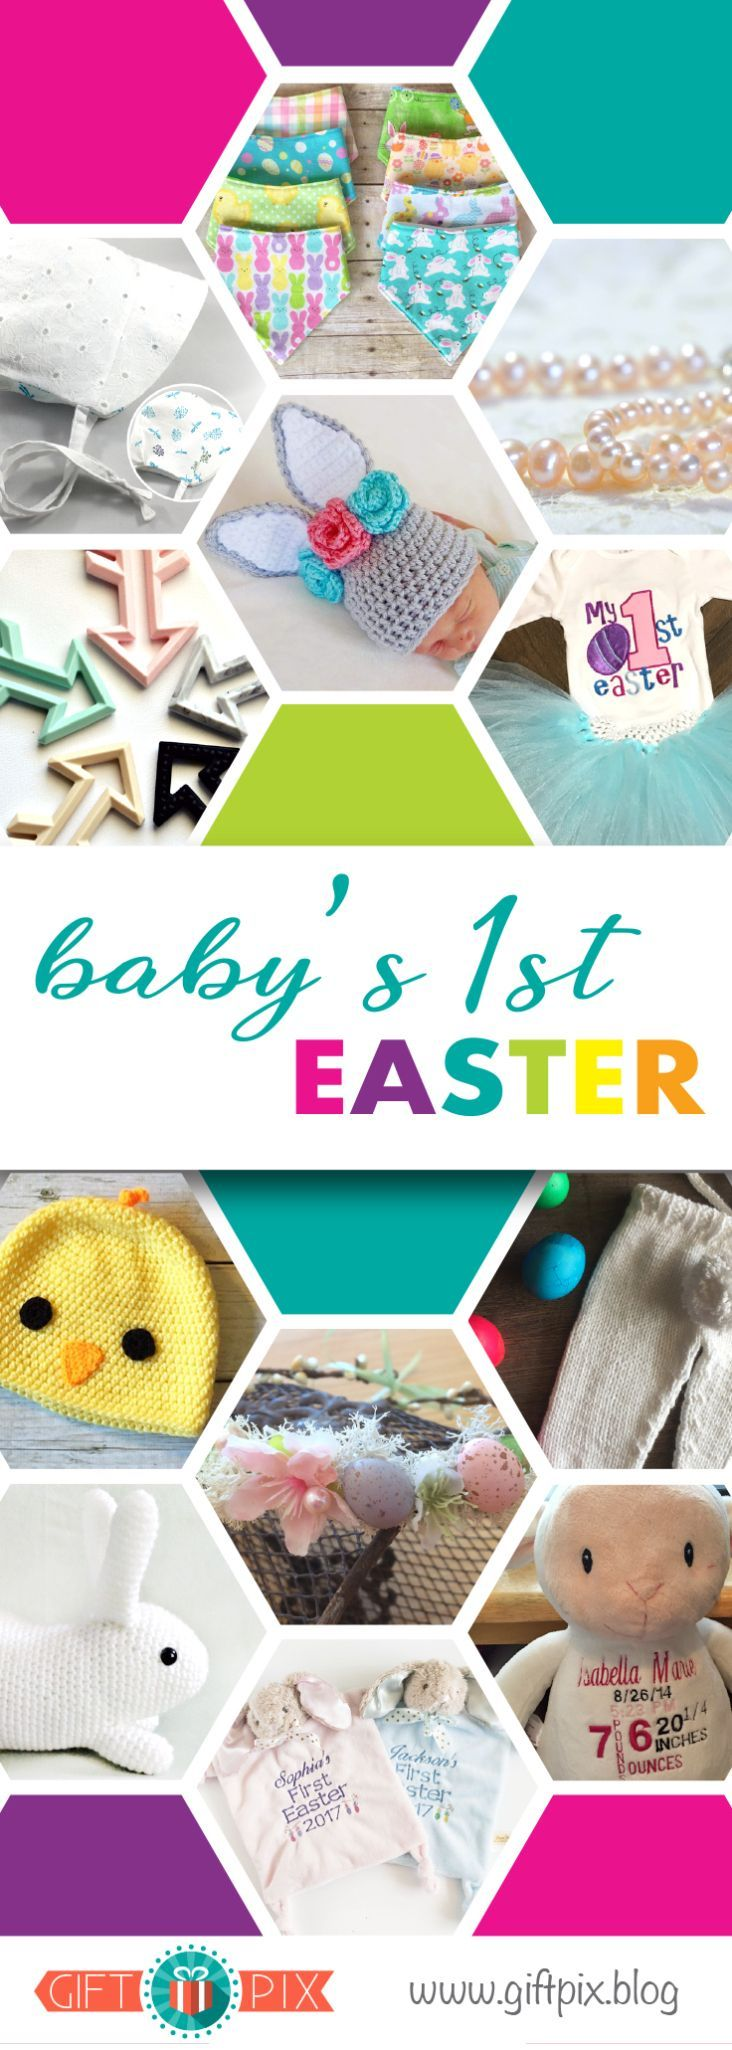 Babys first easter gift guide featuring awesome etsy sellers babys first easter gift guide featuring awesome etsy sellers negle Images